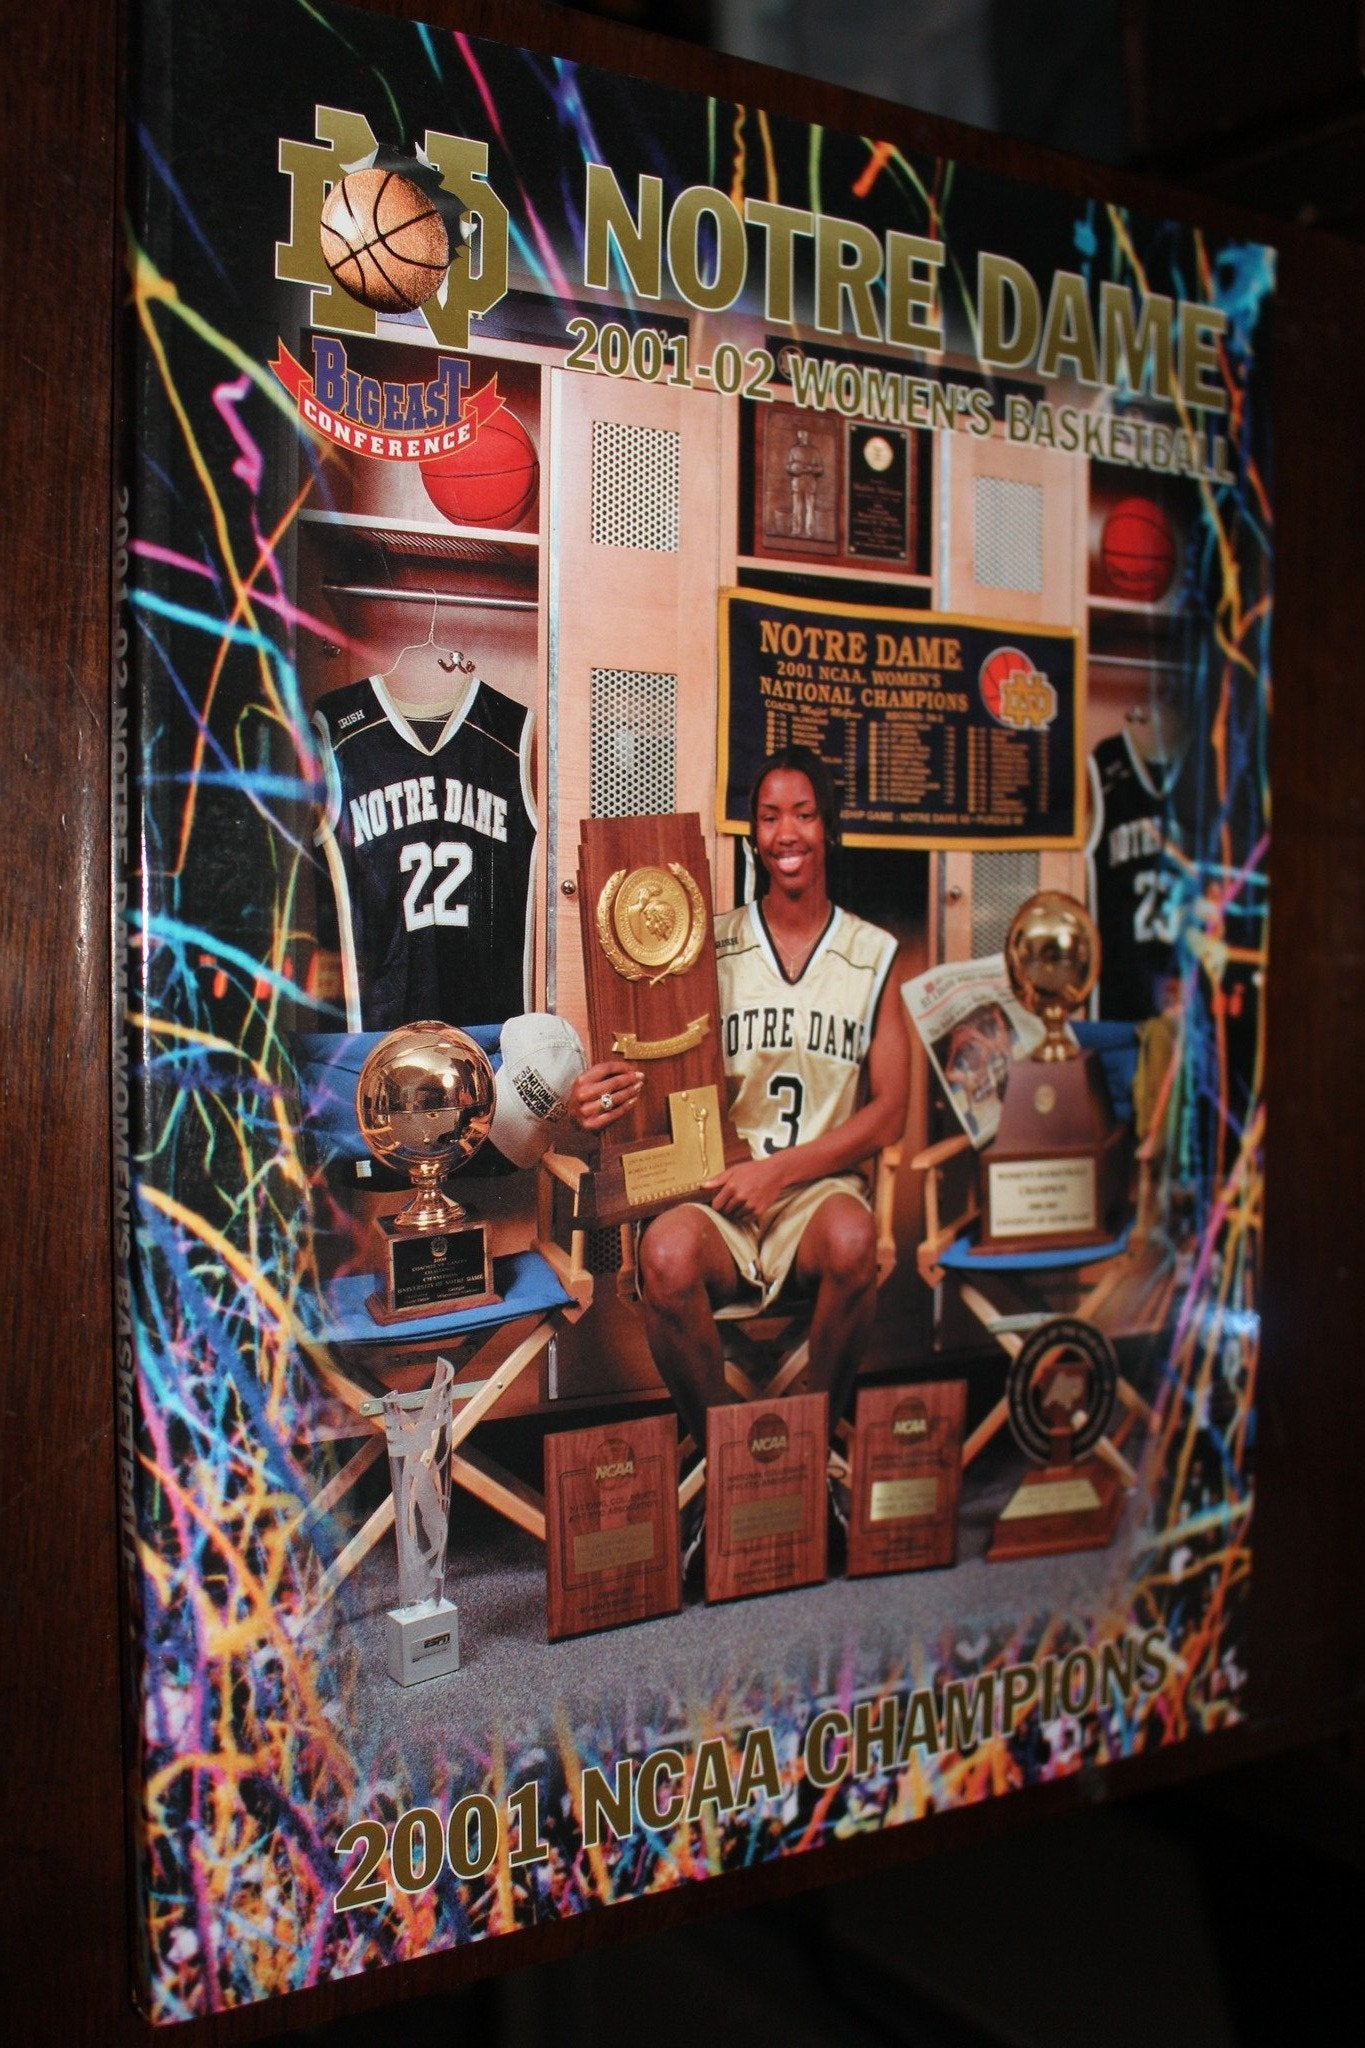 2001-02 Notre Dame Women's Basketball Media Guide - Vintage Indy Sports